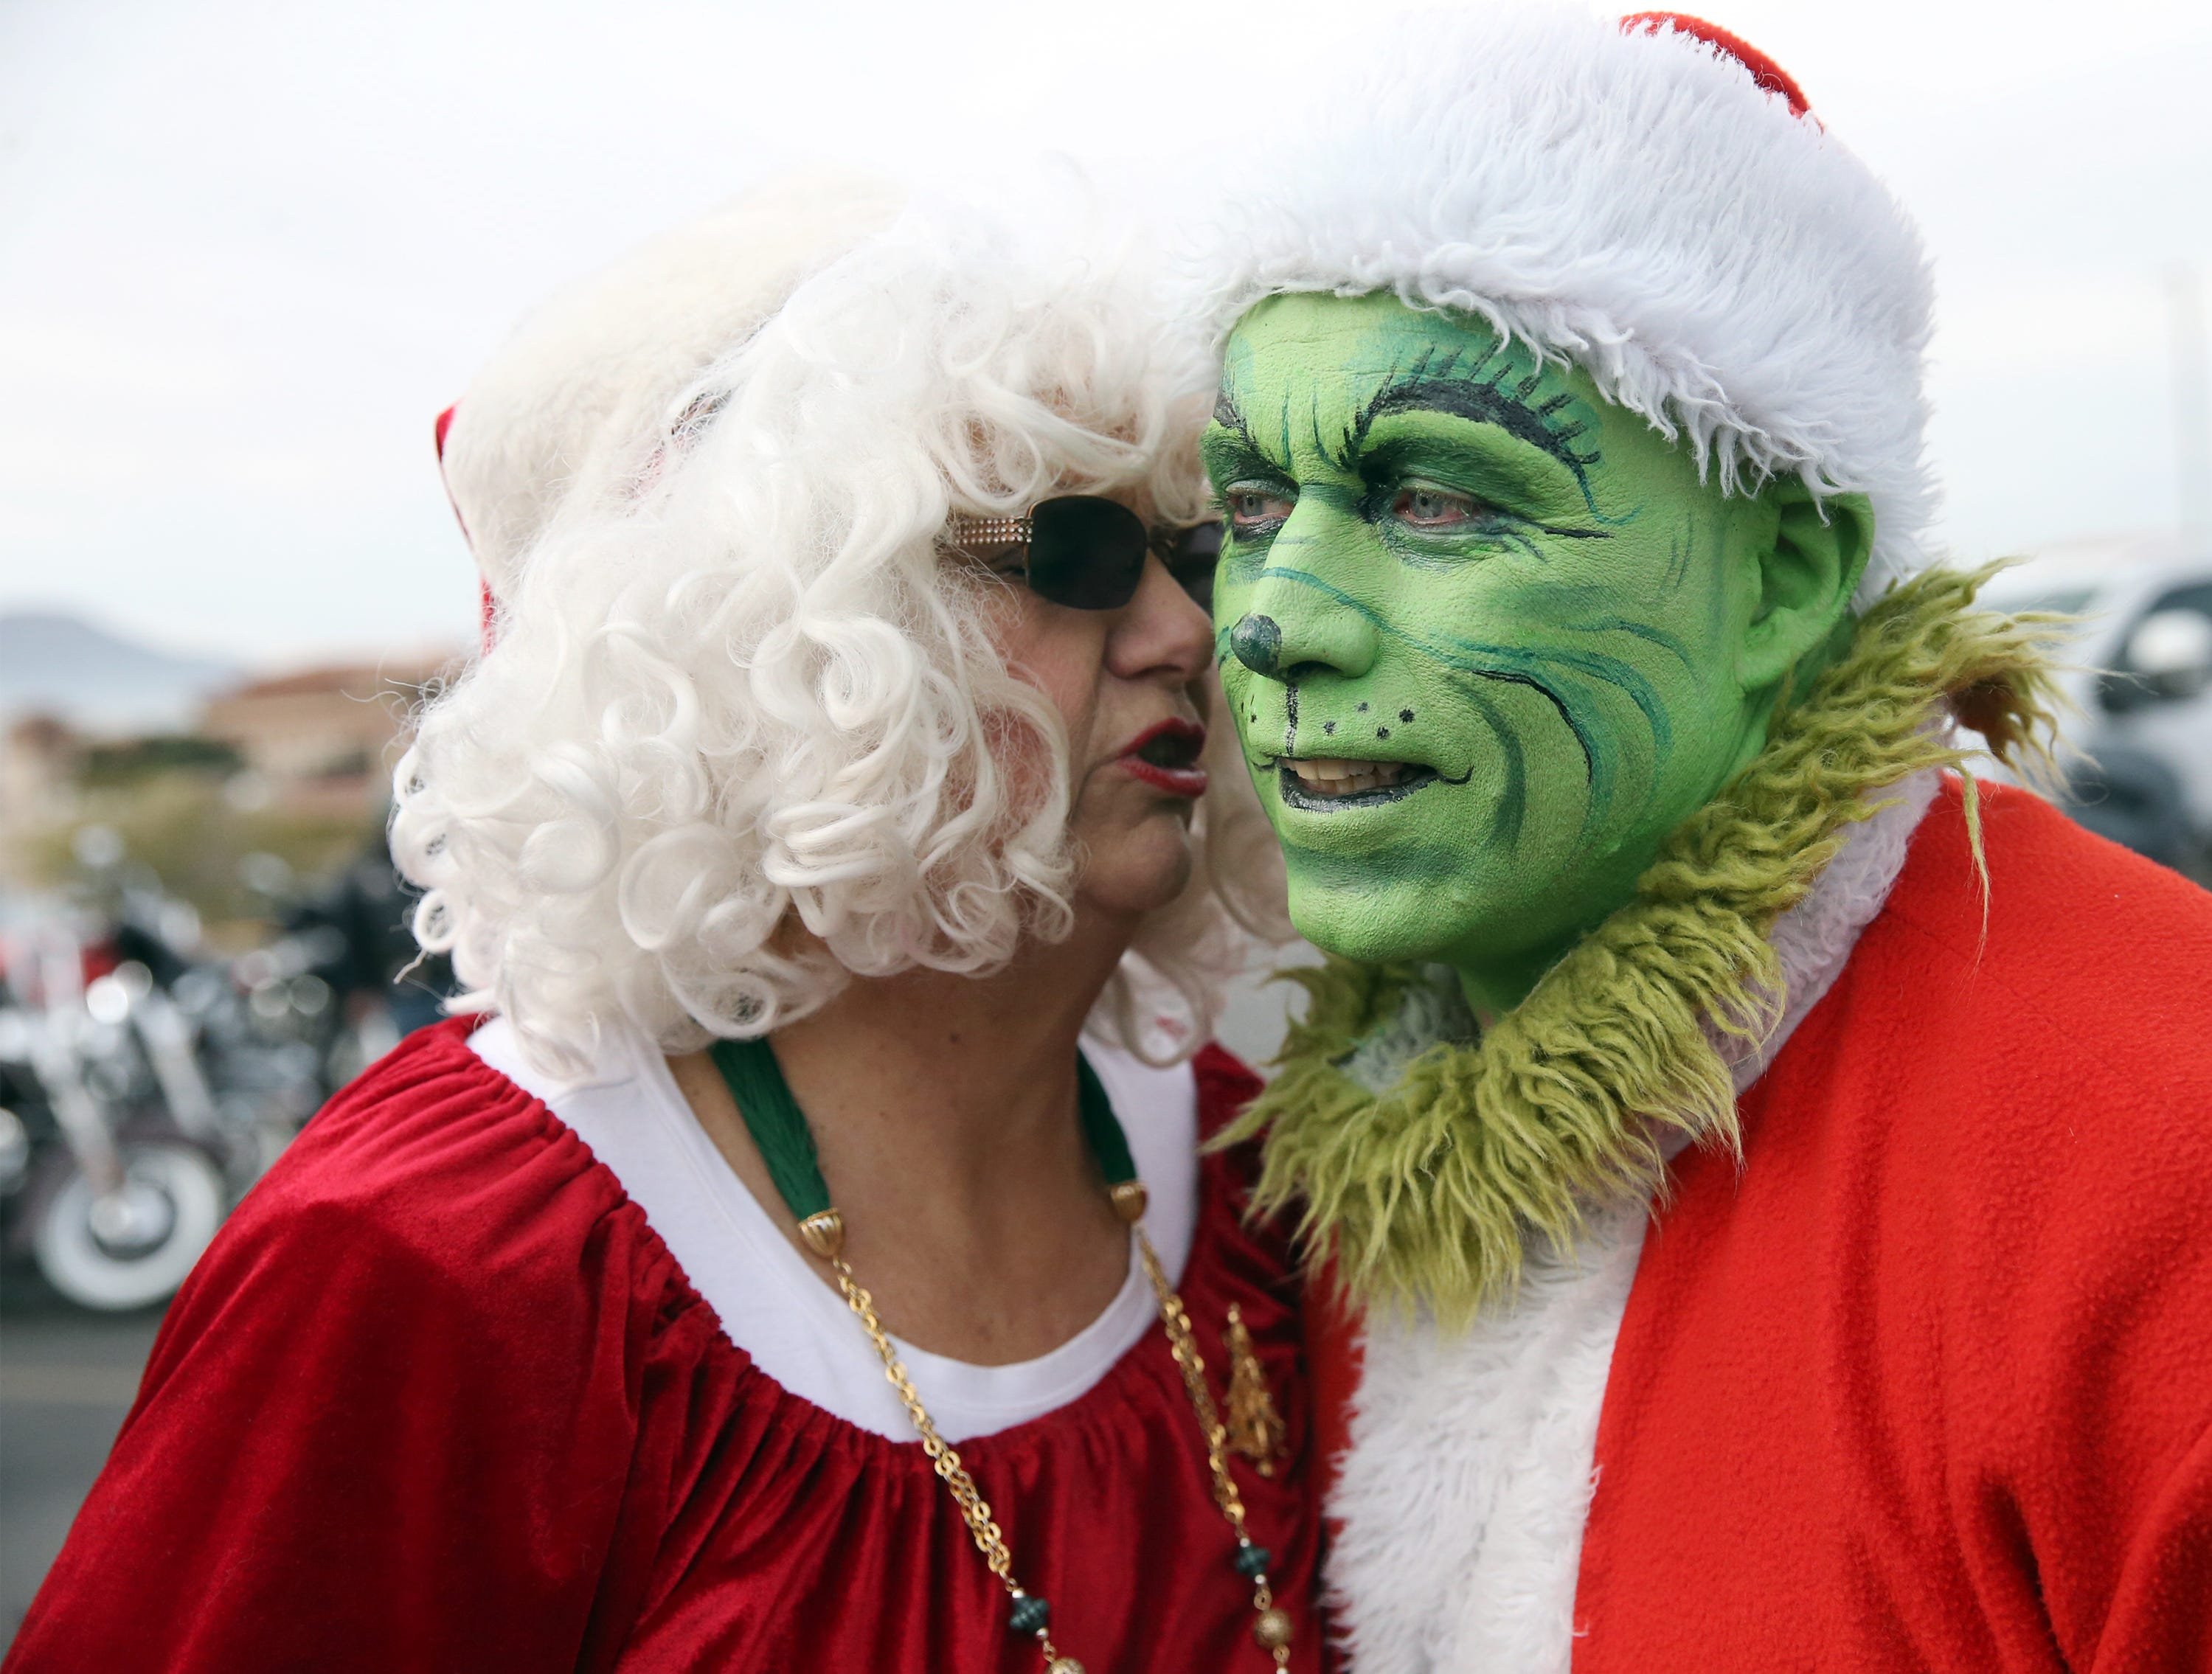 Mrs. Claus sneaks a kiss to the Grinch outside Providence Children's Hospital Christmas Day Tuesday.